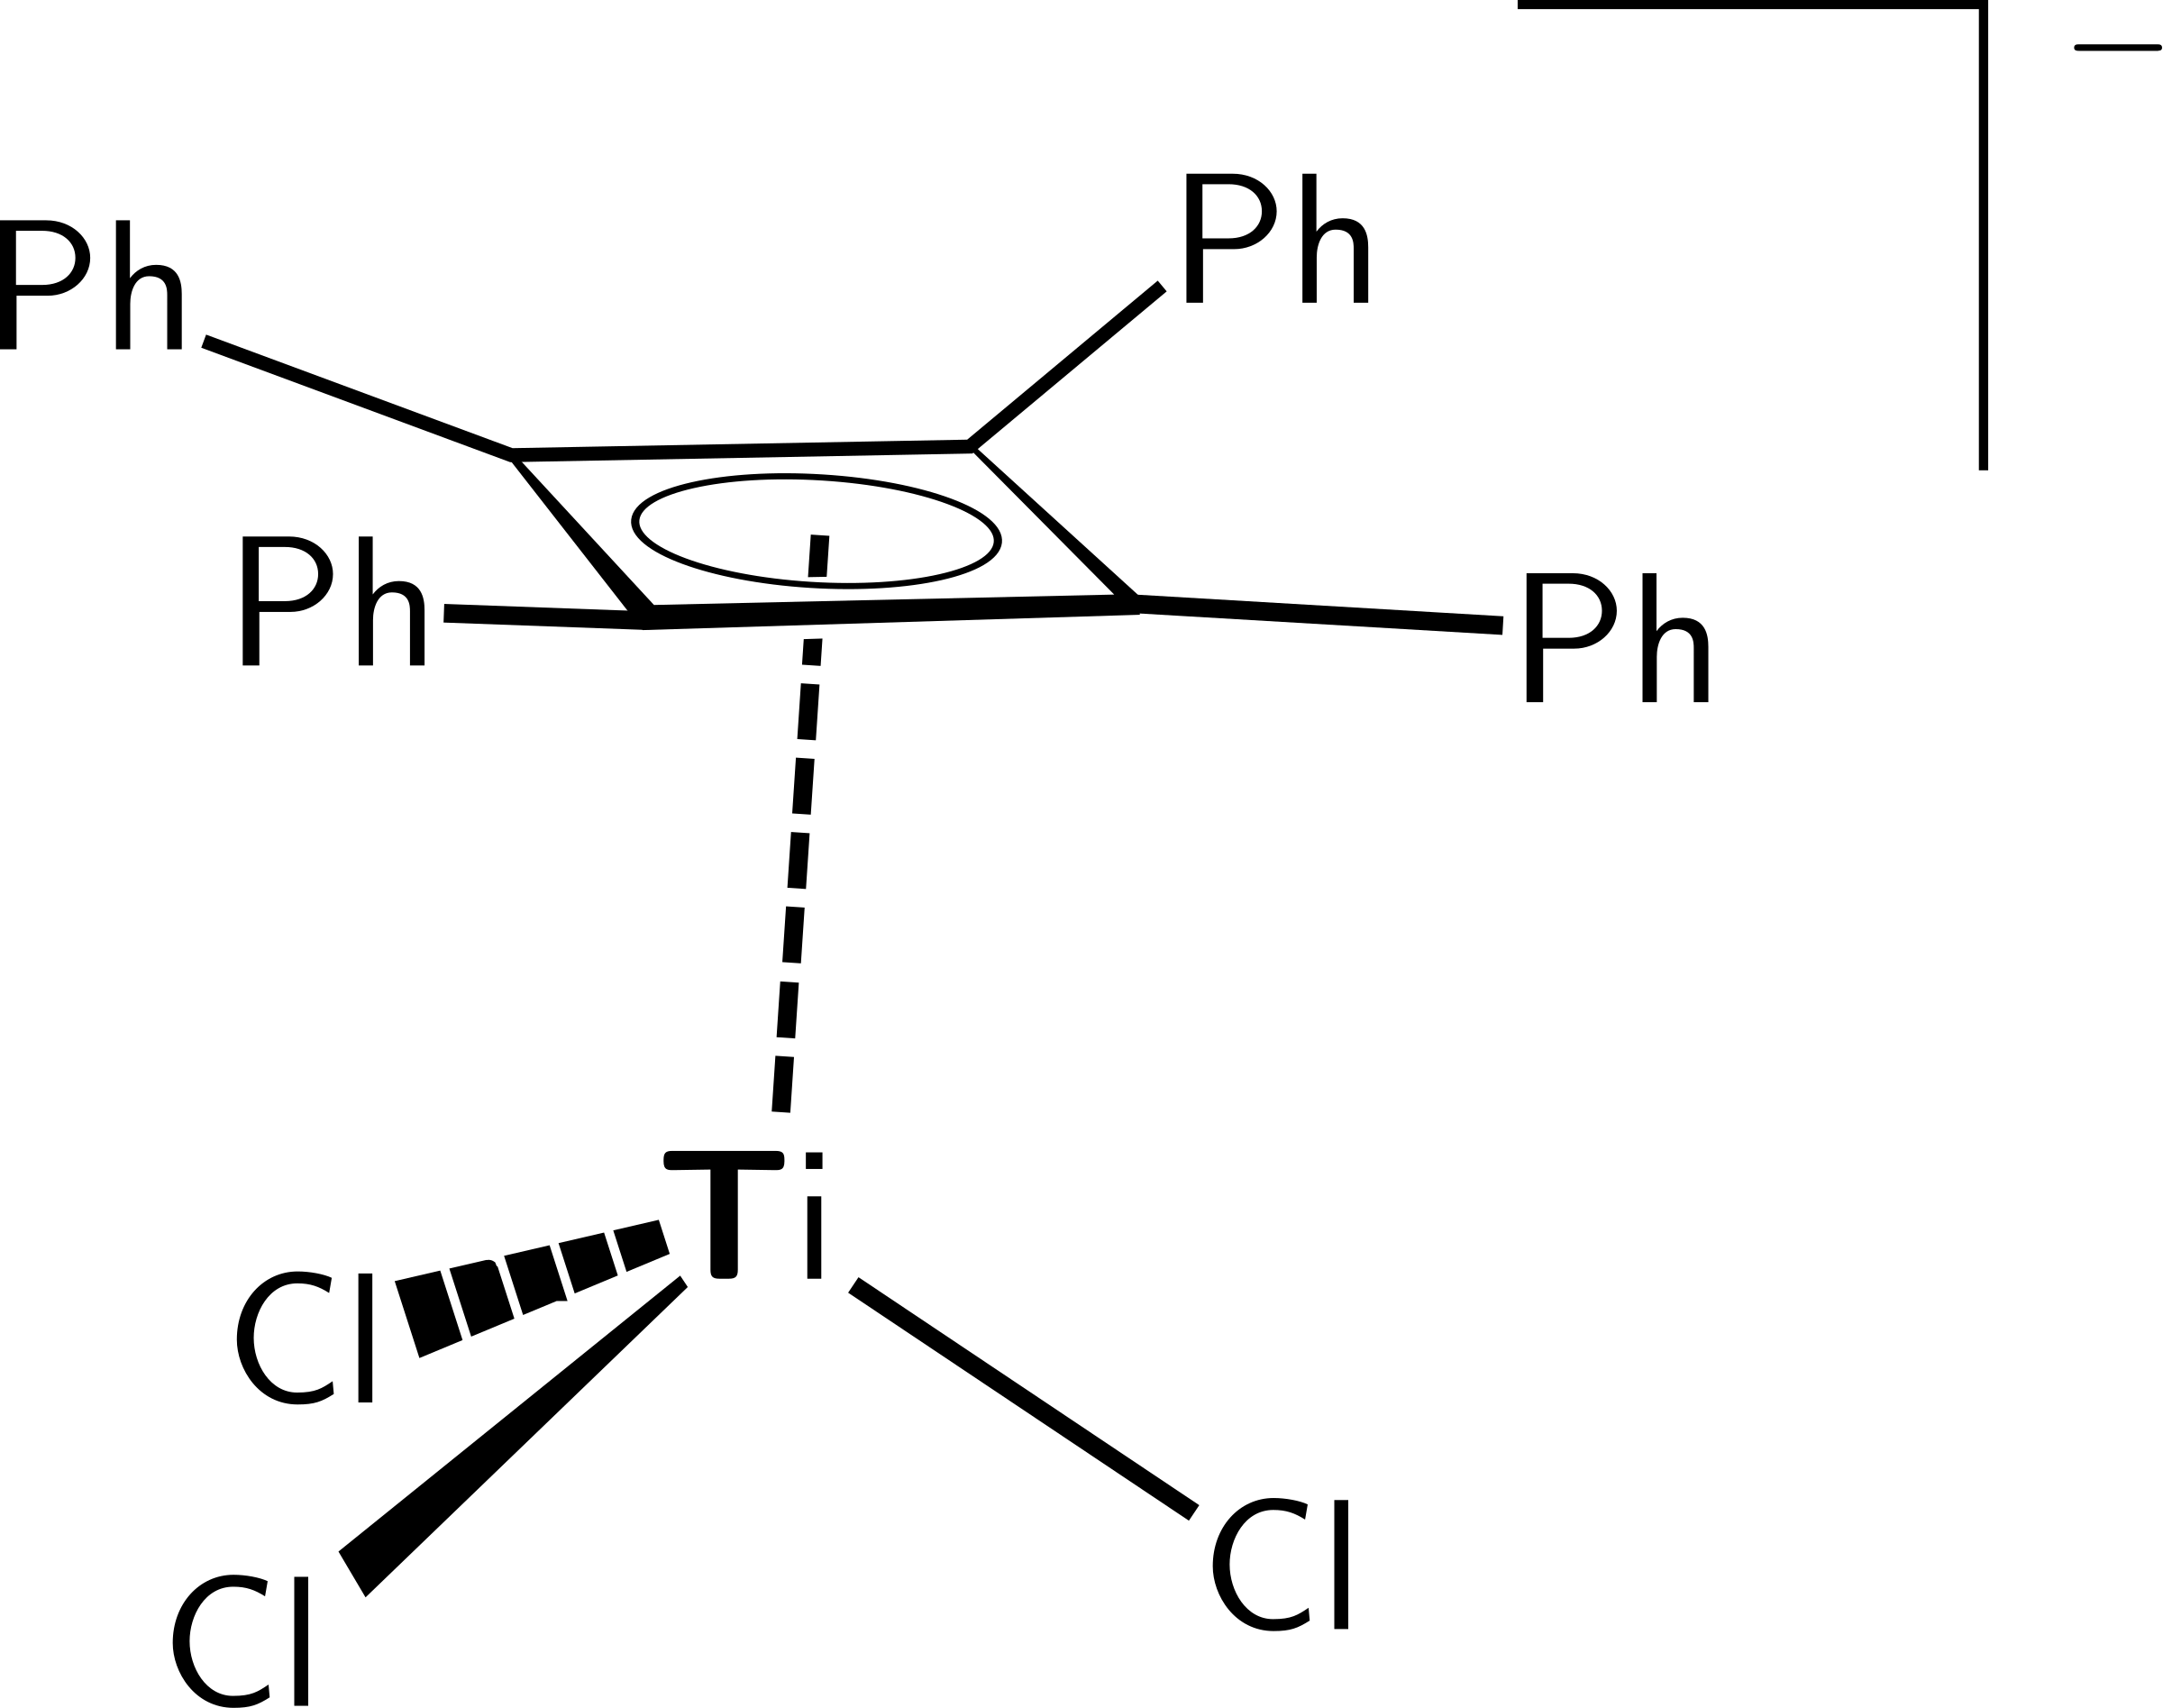 Titanium Complex of Tetraphenylcyclobutadiene by ccummins